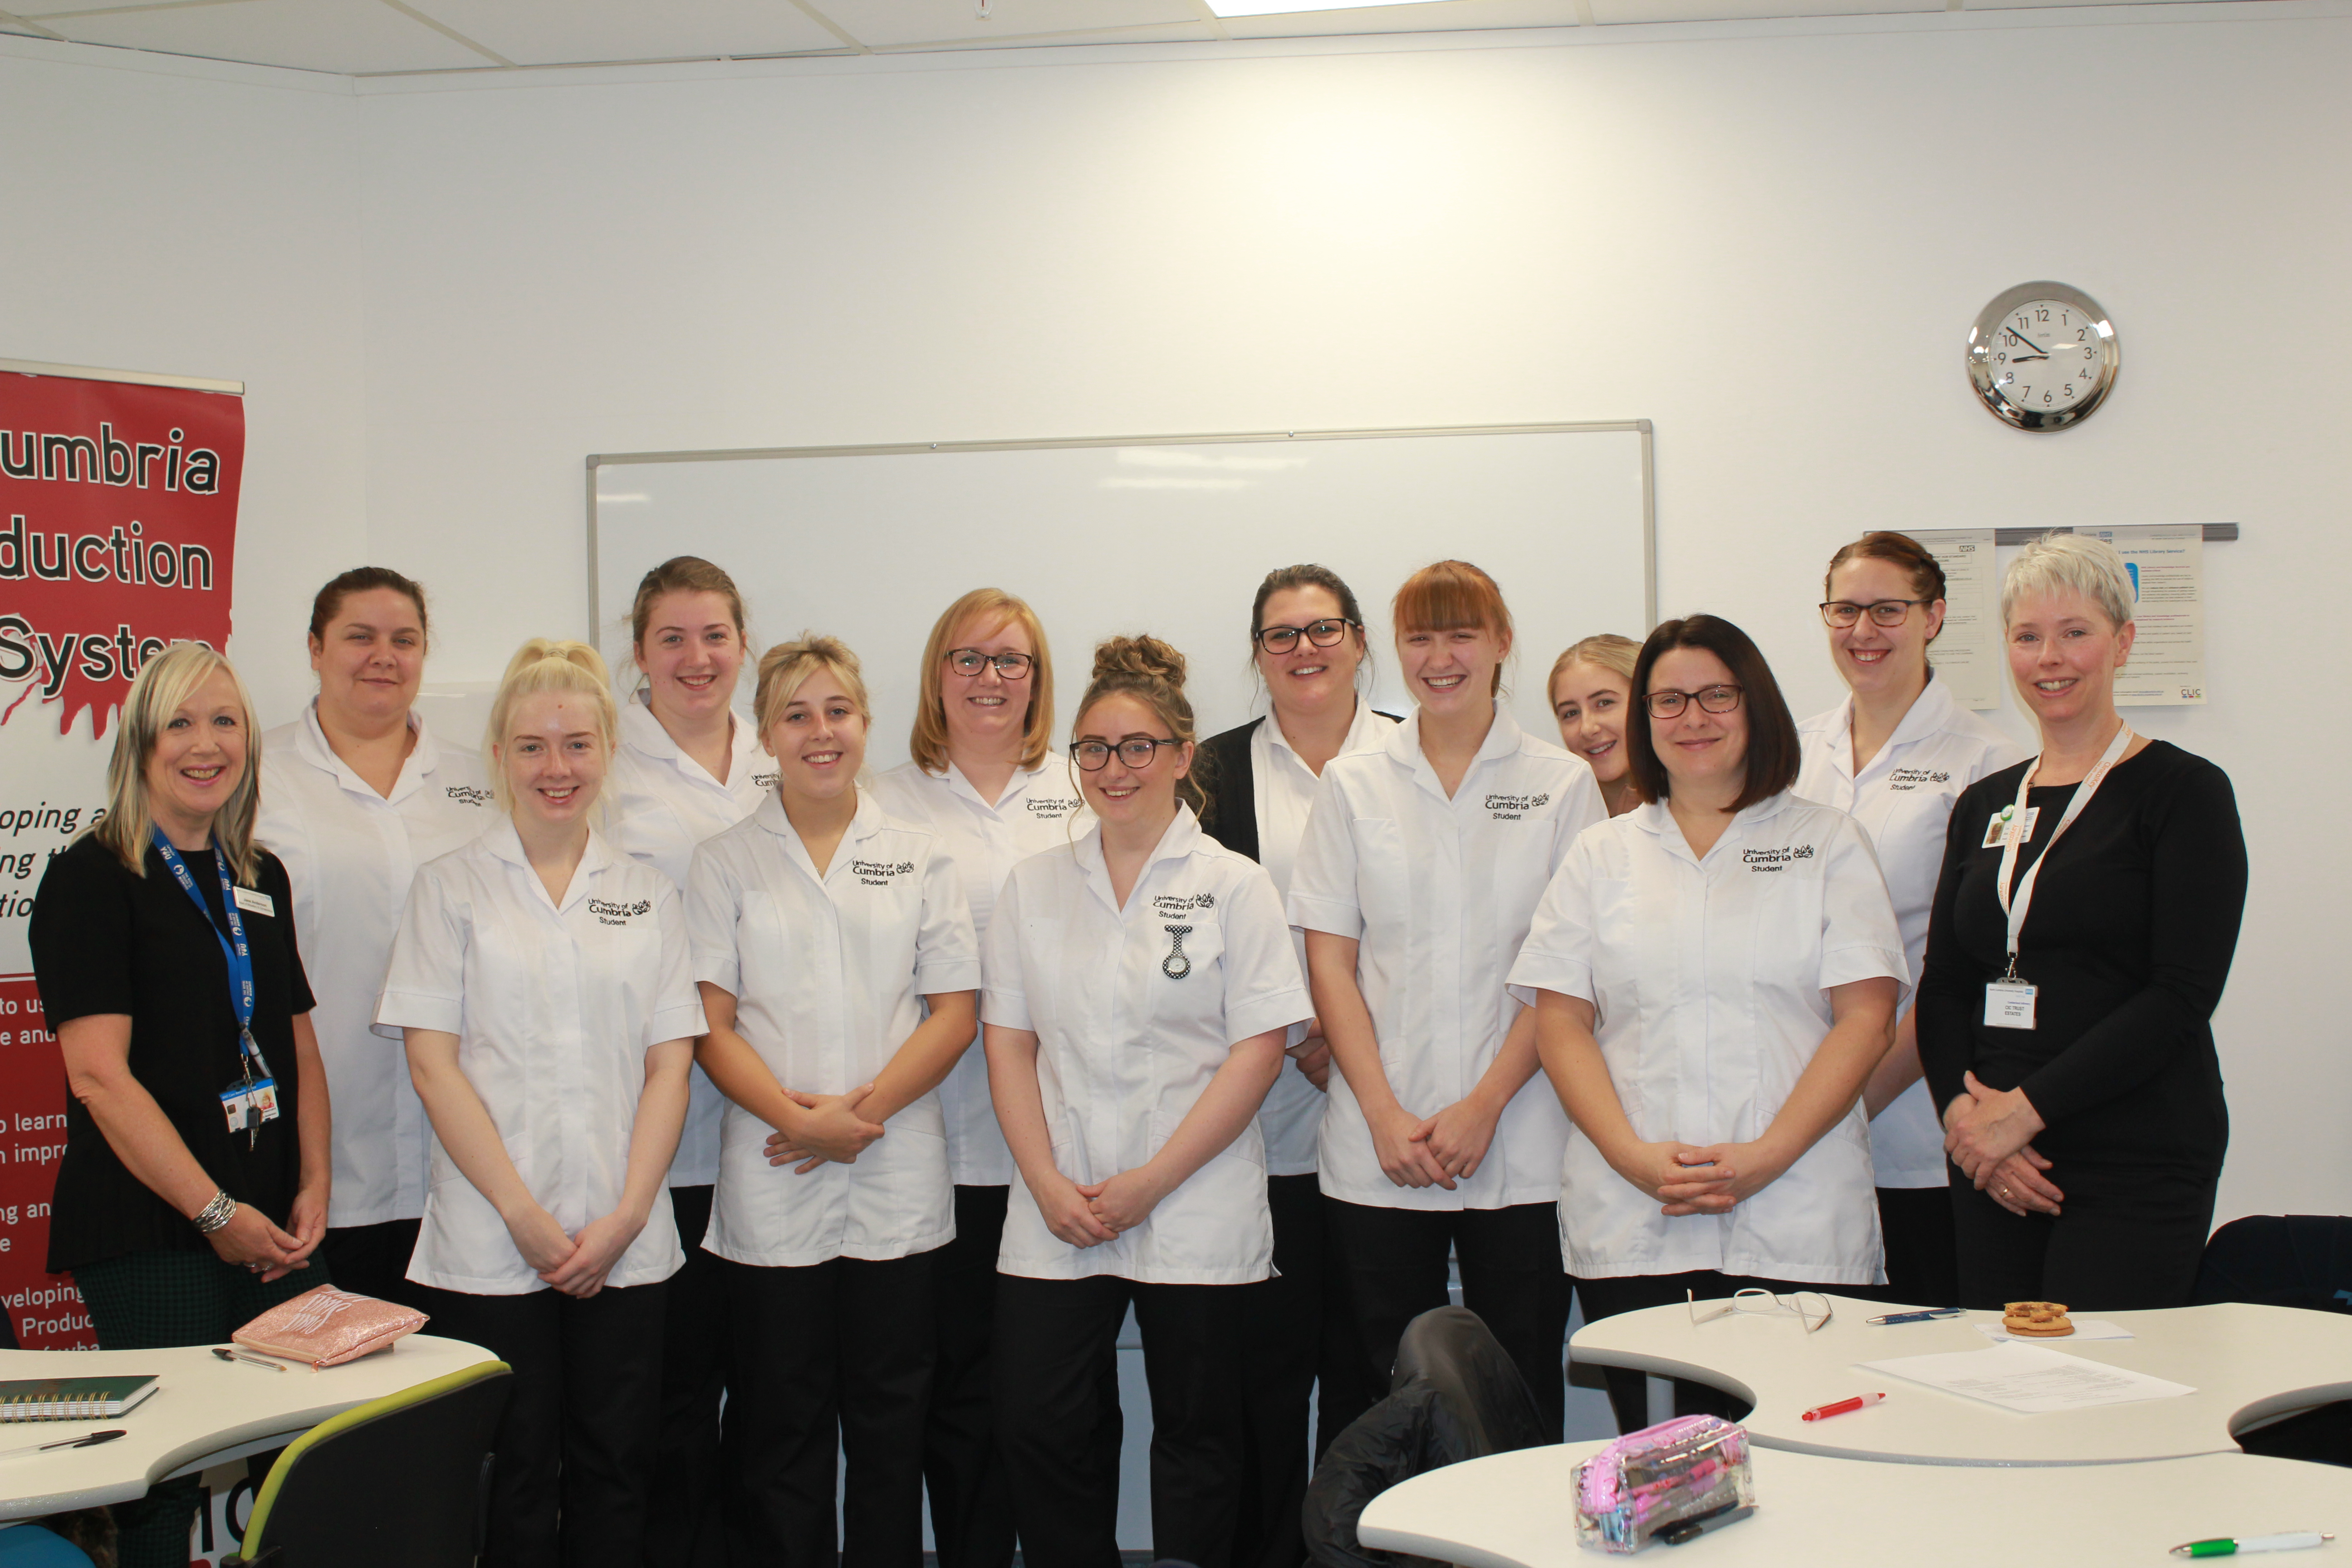 239.Student midwives 2019 day 1.JPG